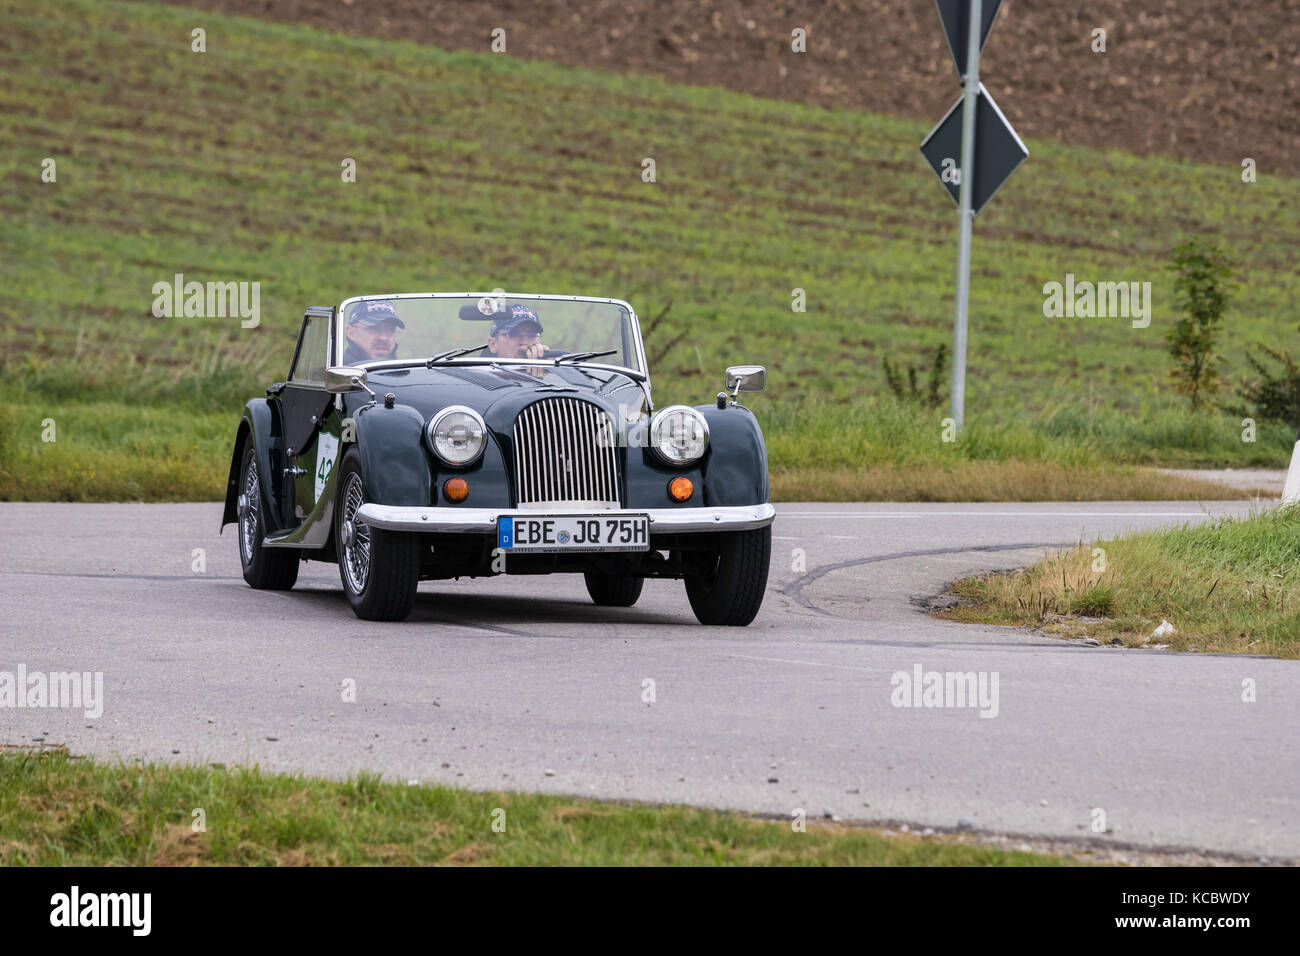 morgan car england stockfotos morgan car england bilder alamy. Black Bedroom Furniture Sets. Home Design Ideas